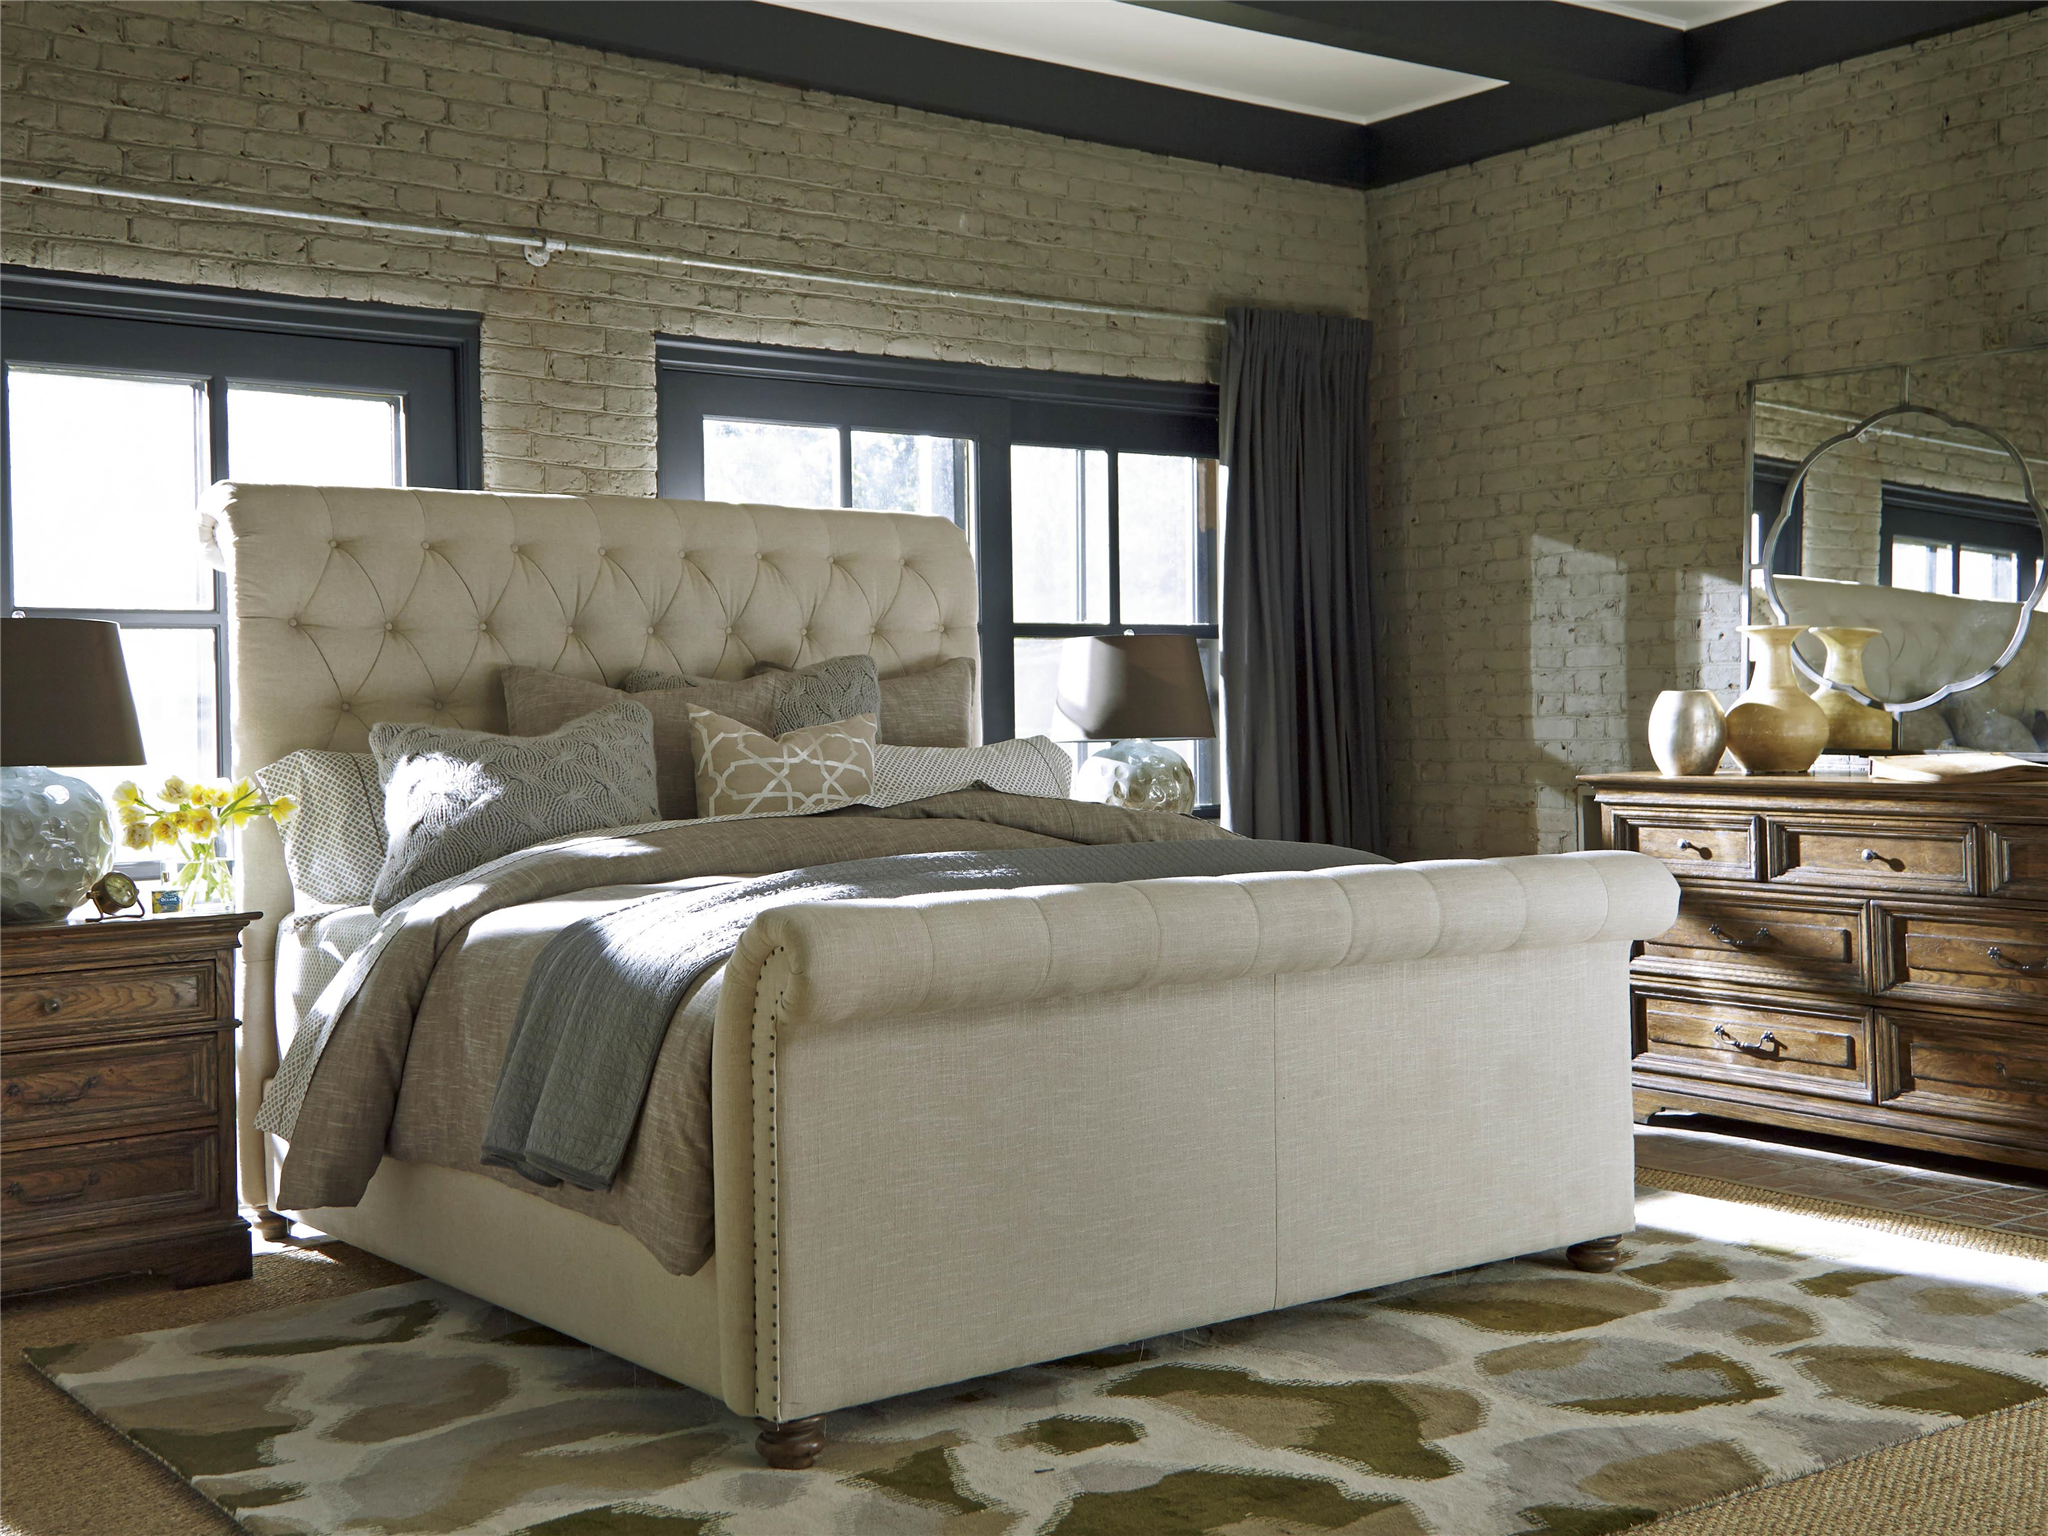 The Boho Chic Cal King Bed